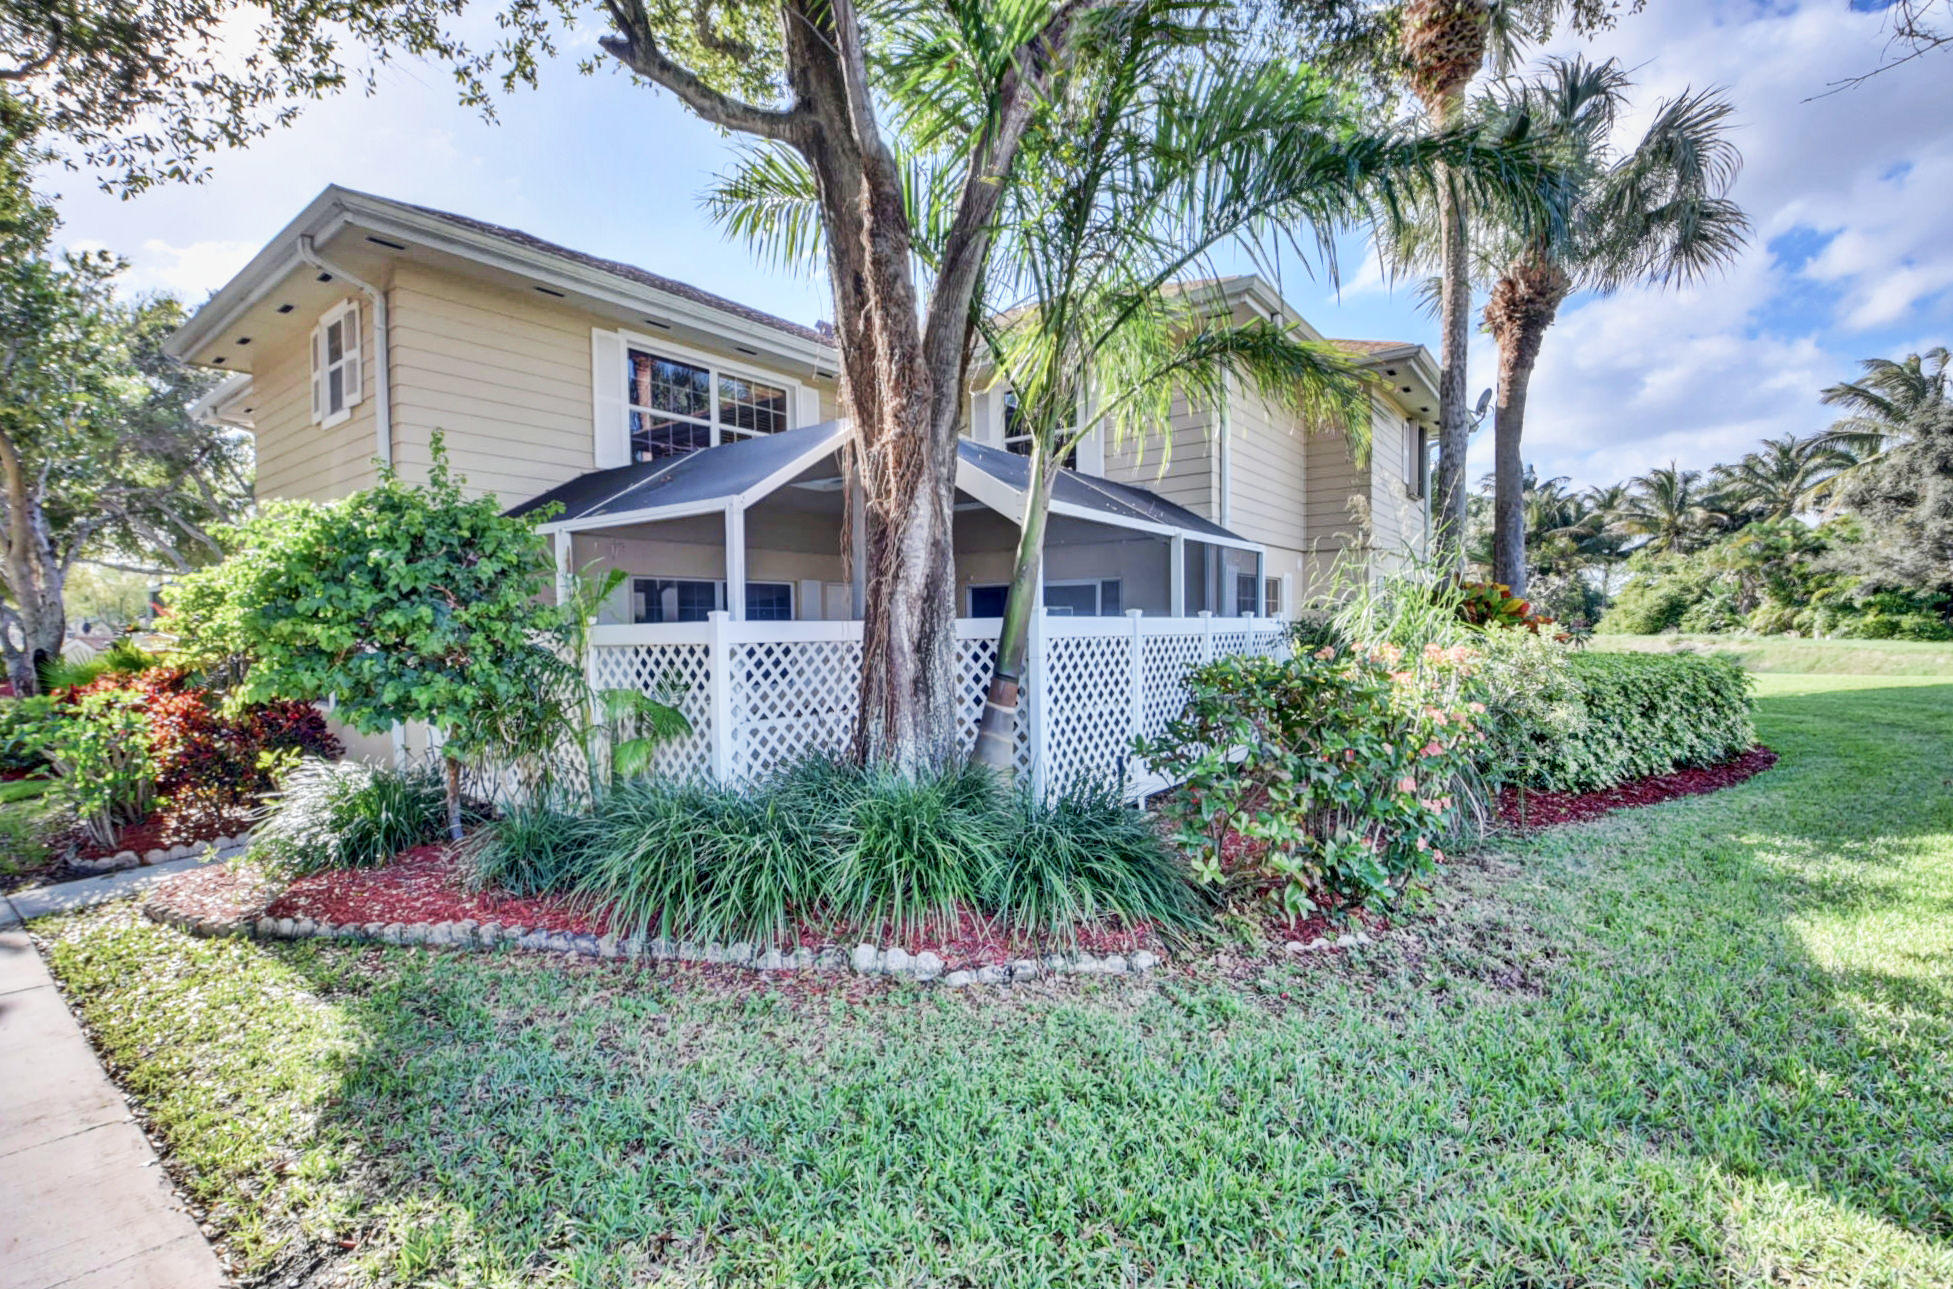 Spacious and private townhome property set in the back of the lovely Wellesley community. Located close to all of central Boynton Beach's best dining and shopping options, easy access to I95 and great schools. This unit offers the most privacy within the community, adjacent to the canal and on the back of the building. Pass through the gate into a 336 square foot, screened-in, covered patio. Amazing space to entertain! Entrance into the living room which features great natural light and laminate floors. Open kitchen/dining room is great for entertaining and features large sliding glass door and double window. Downstairs half bath, laundry and oversized storage closet.Two spacious master-suites upstairs with plenty of room for king-size beds.This home is ready for its new ow